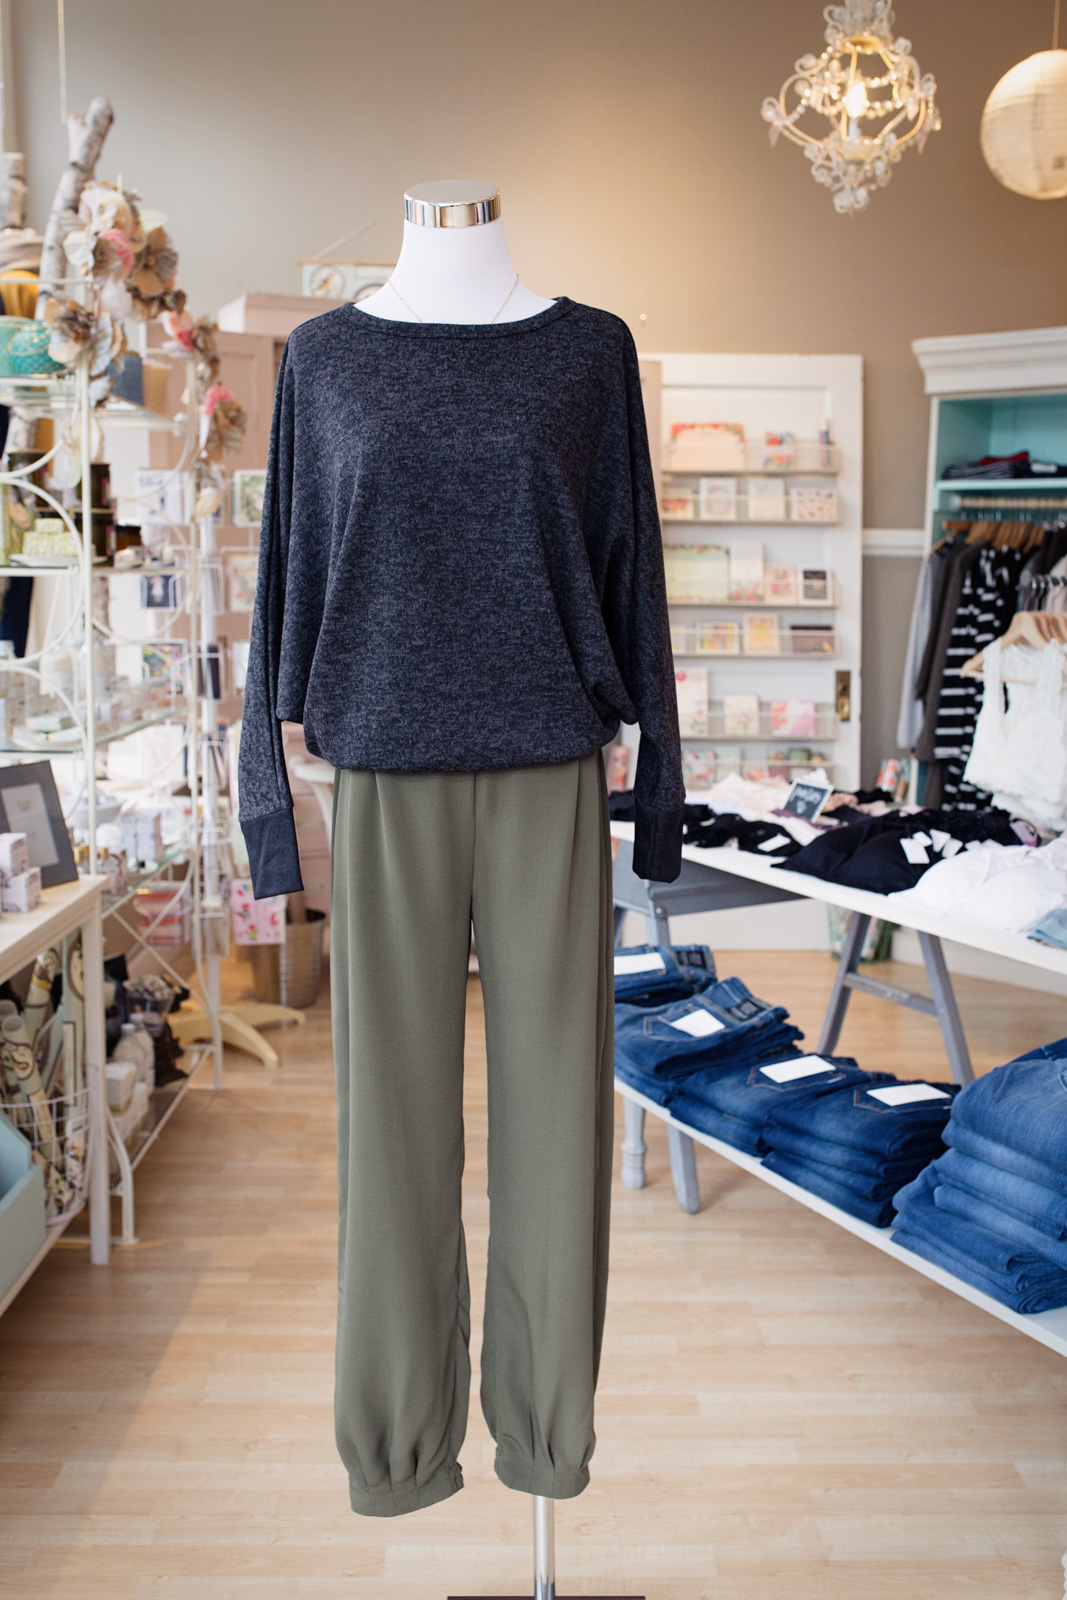 Meadow boutique queen anne seattle - yuliya rae photography-9.jpg